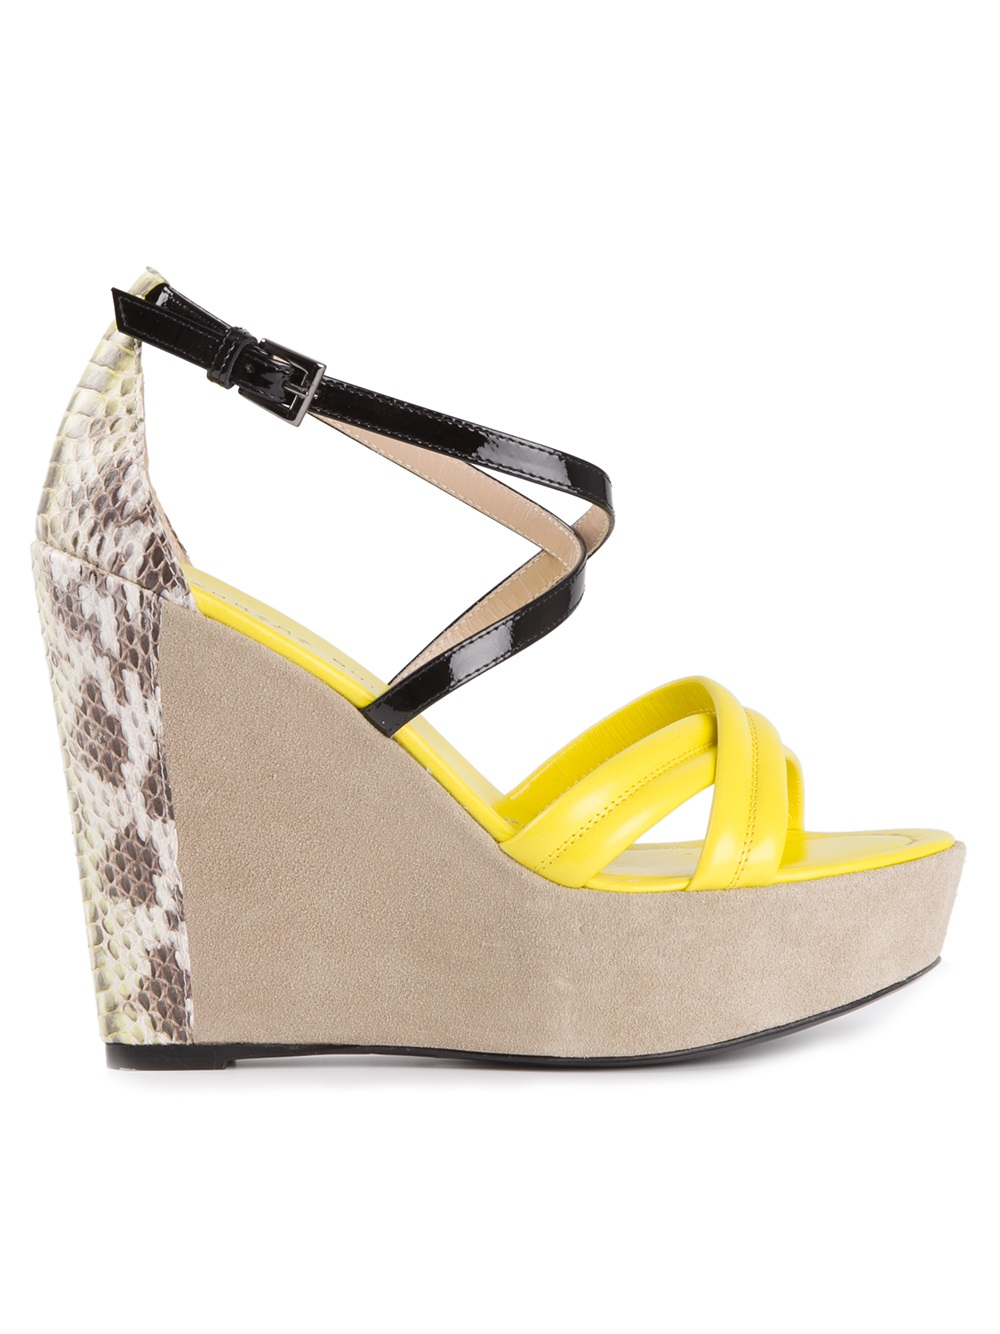 Barbara Bui Wedge Sandal In Yellow Yellow Amp Orange Lyst